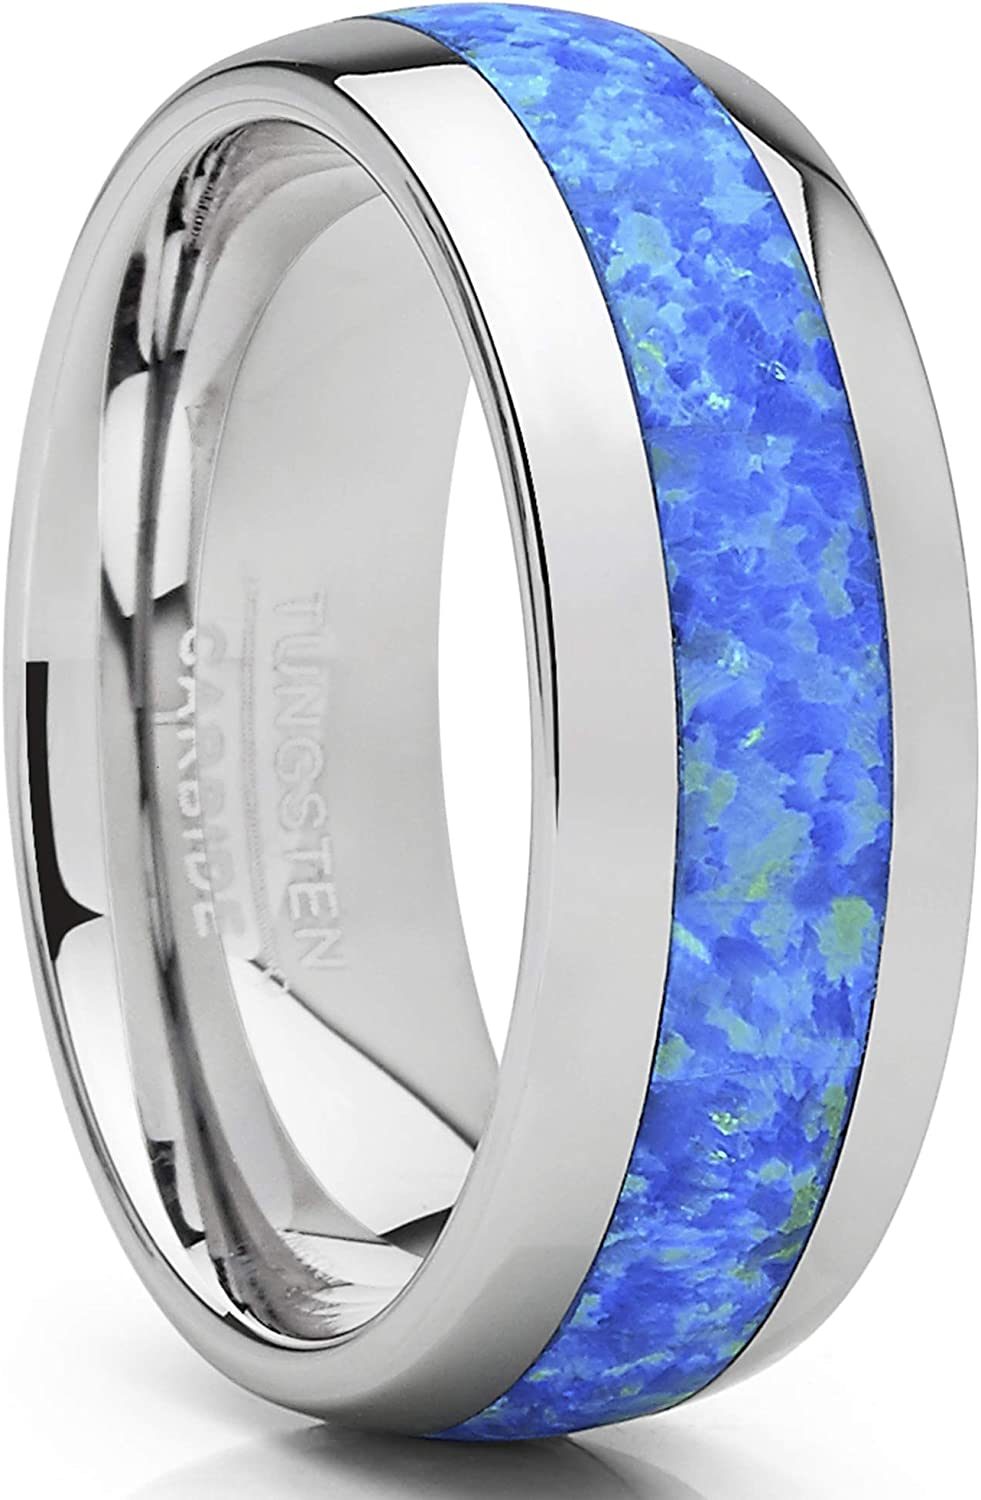 Metal Masters Co. Tungsten Carbide Wedding Band Dome Ring with Blue Green Simulated Opal Inlay 8mm